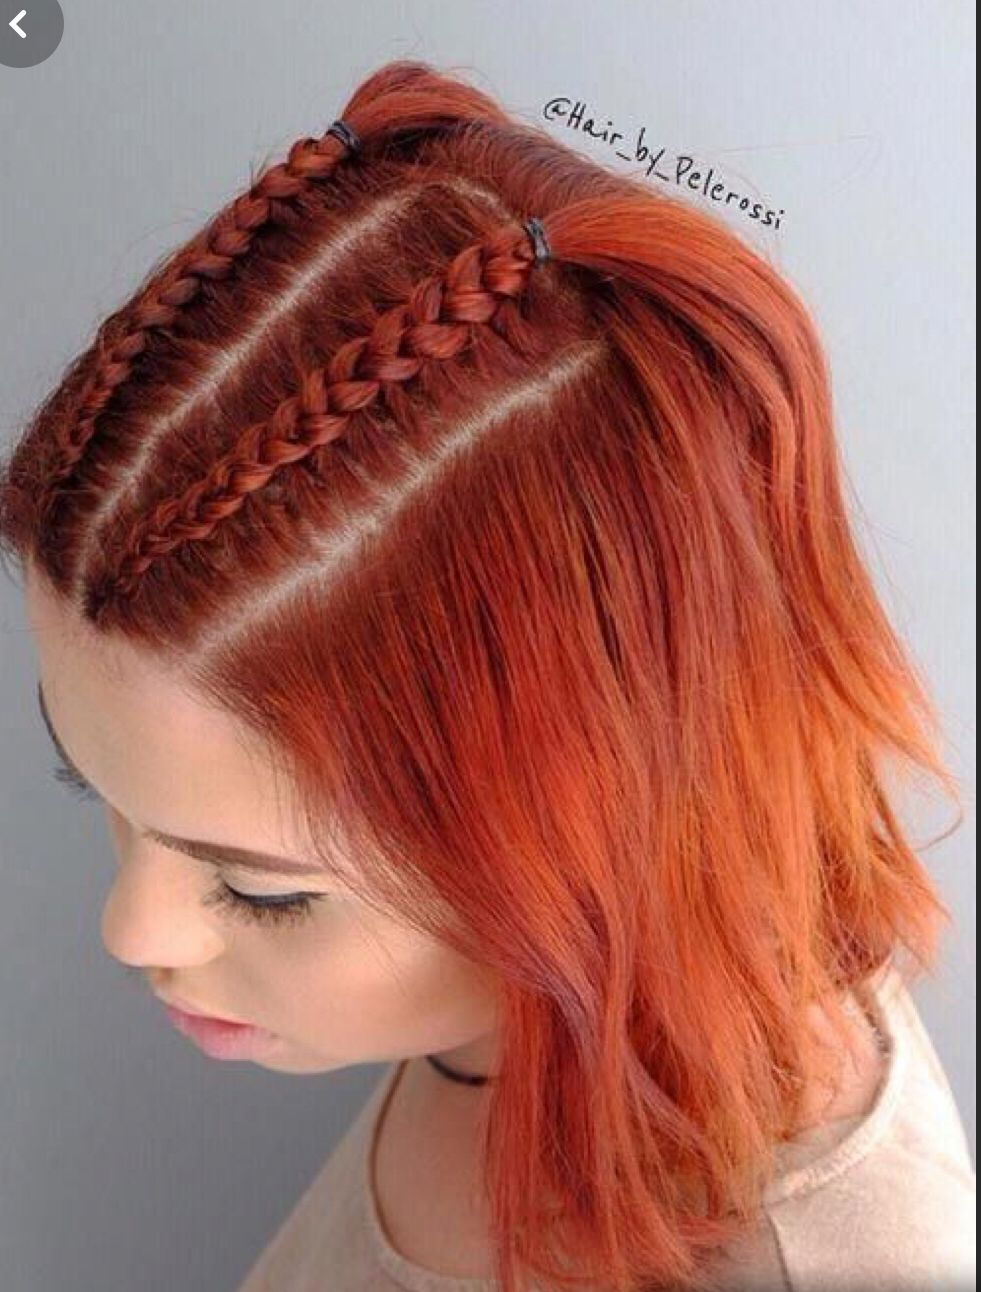 Pin By Salama On Art In 2020 Cute Hairstyles For Short Hair Quick Braided Hairstyles Hair Styles